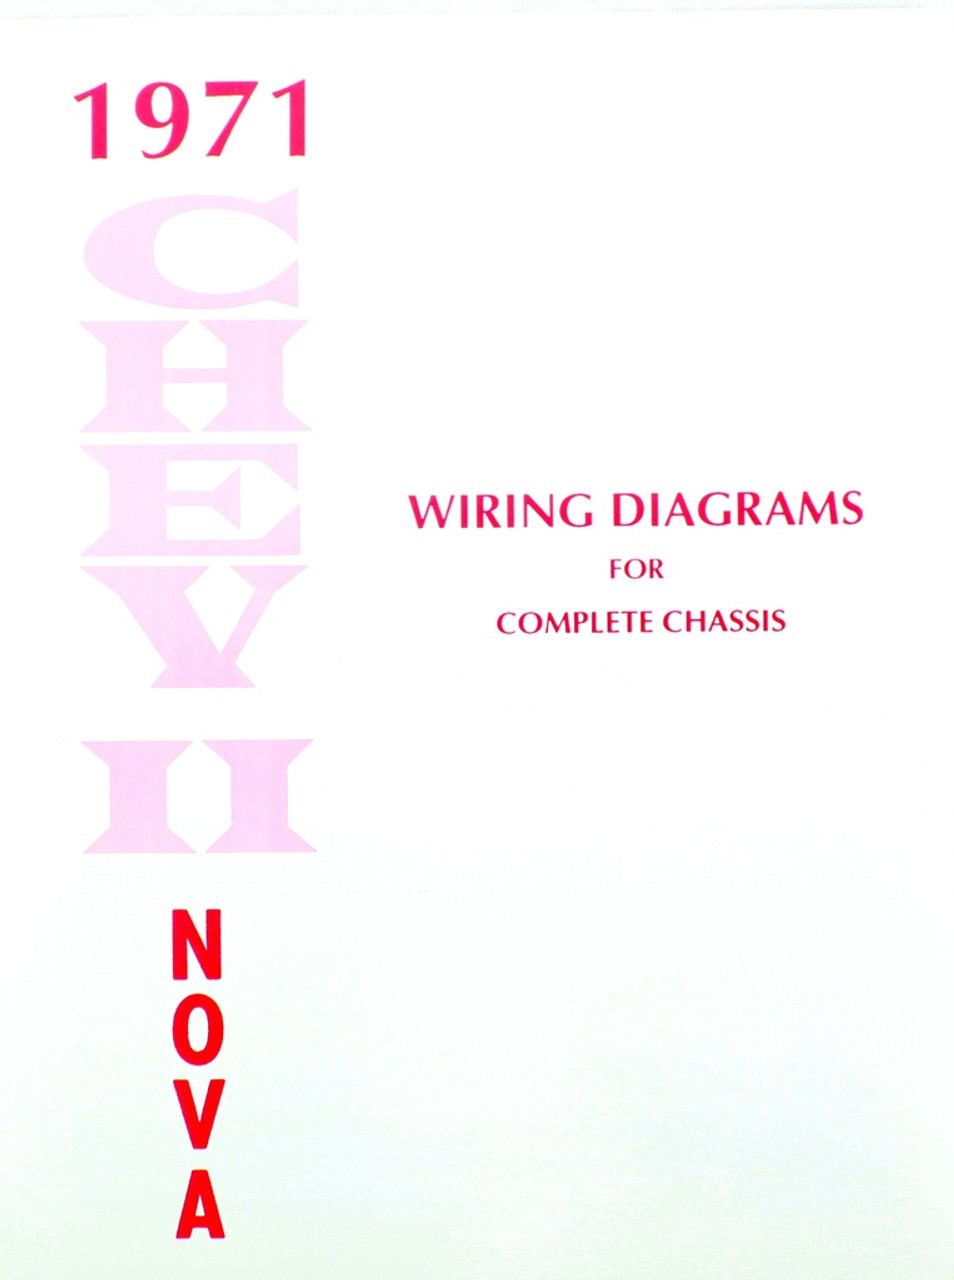 71 1971 CHEVY NOVA ELECTRICAL WIRING DIAGRAM MANUAL  I5